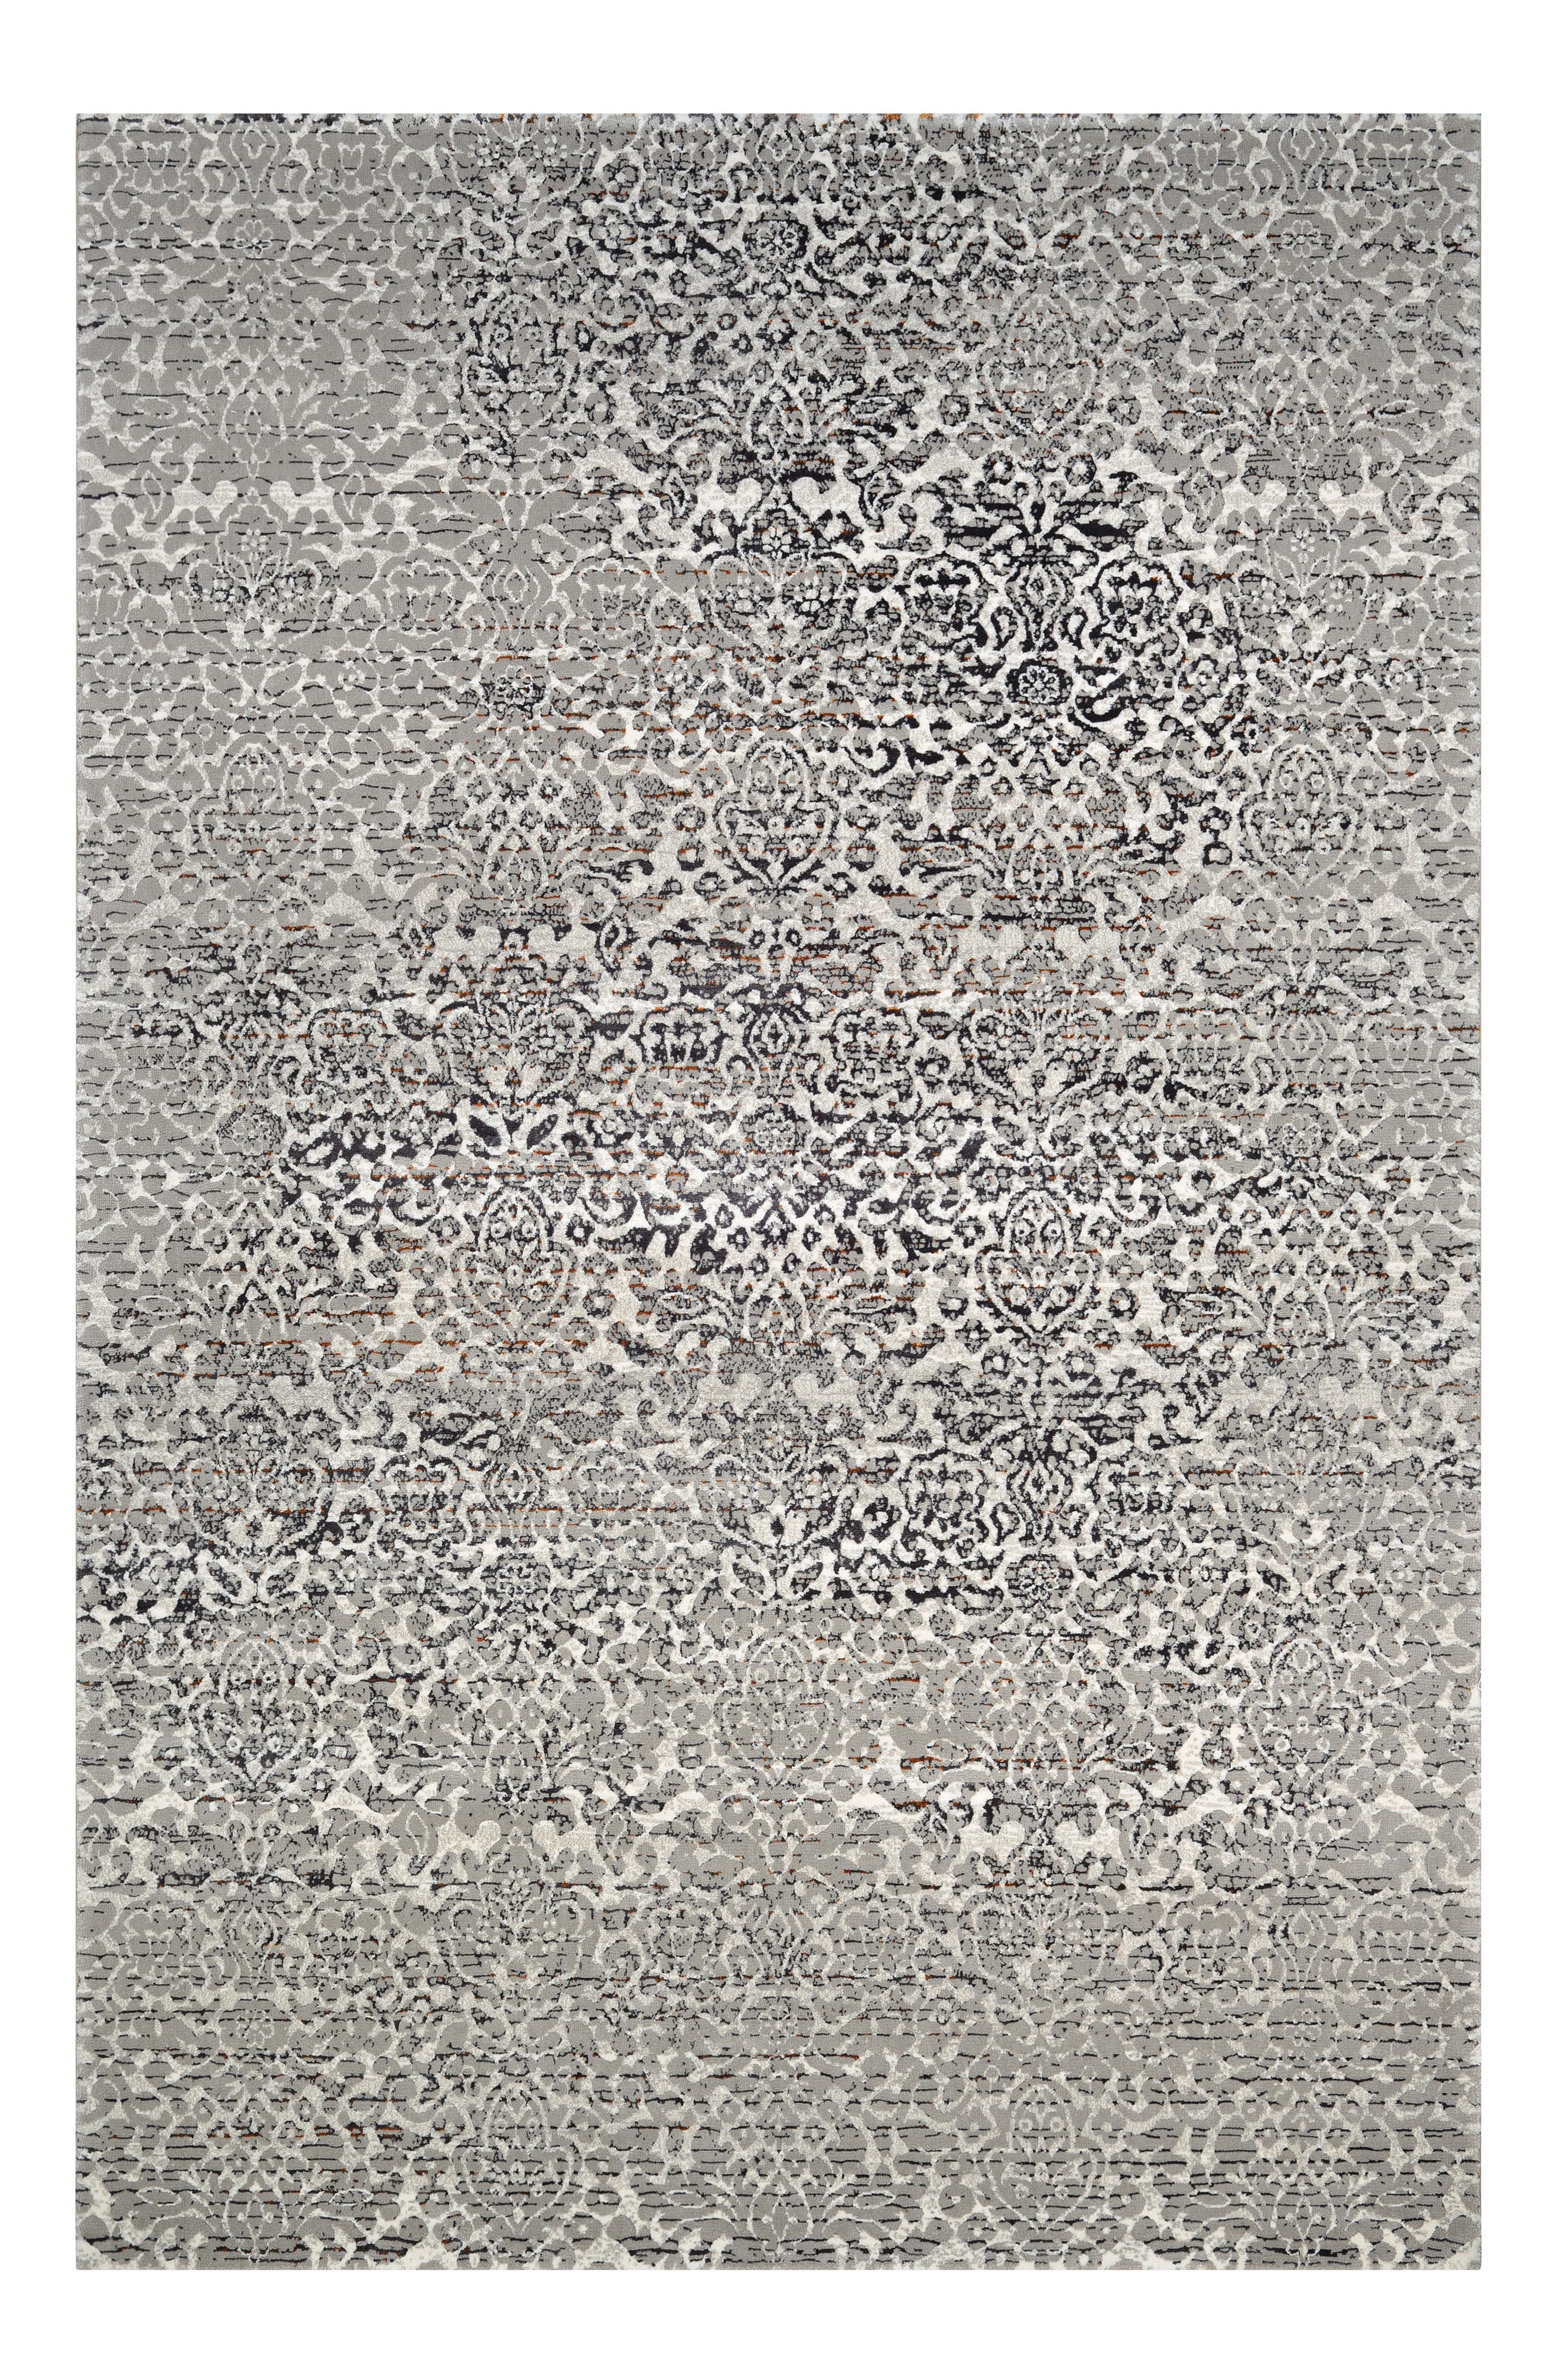 Patina All Over Kerman Area Rug,                         Main,                         color, 020